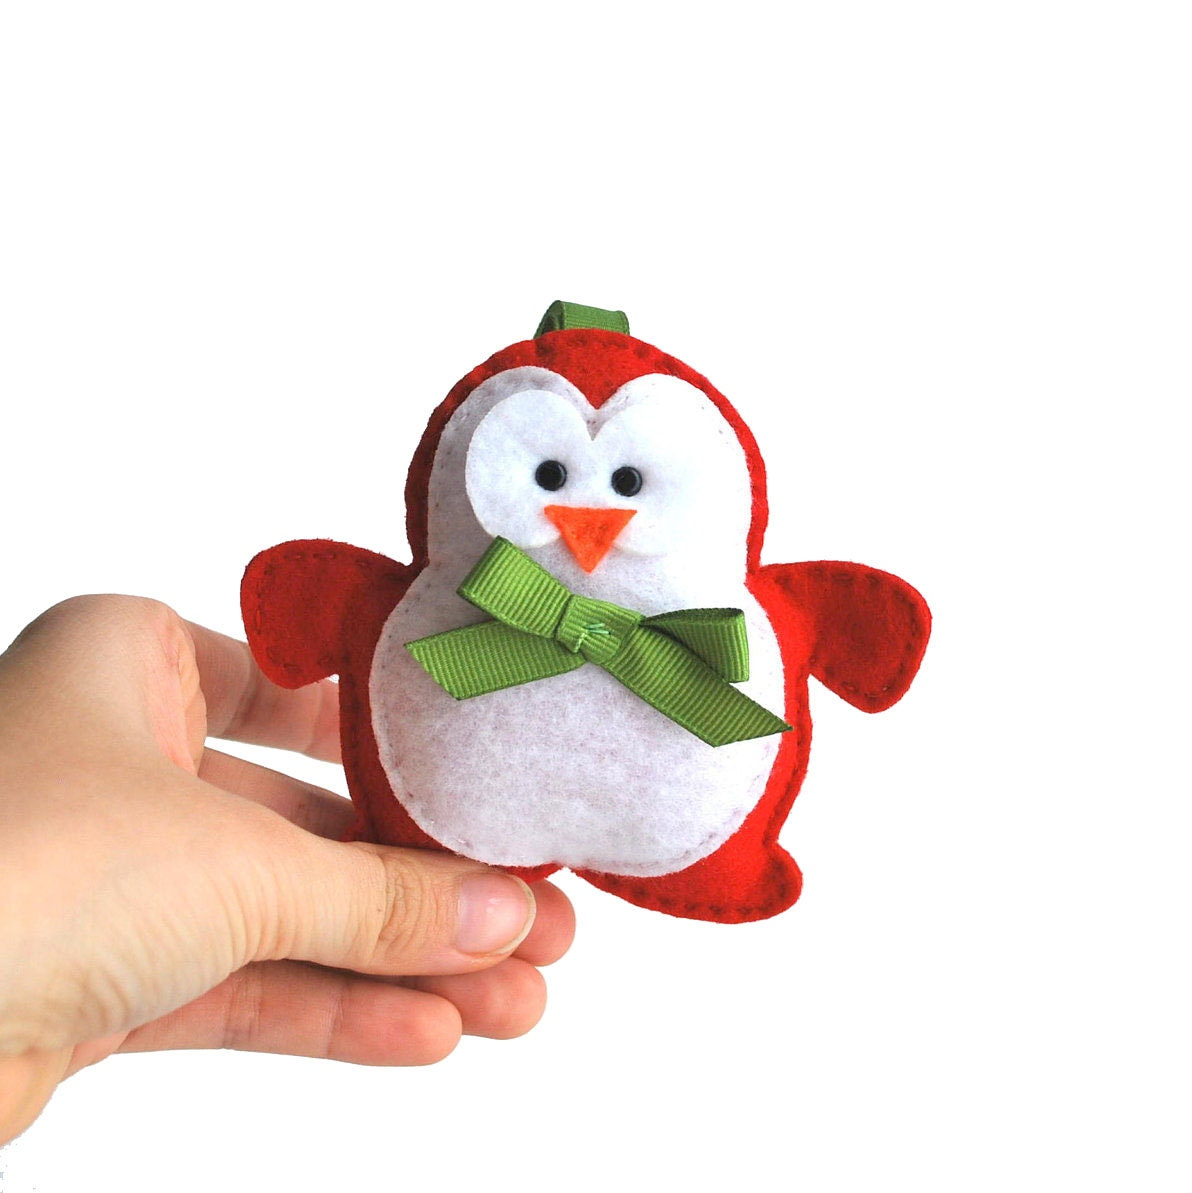 Red Valentine Penguin Ornament, Holiday Ornament - first baby ornament  A483